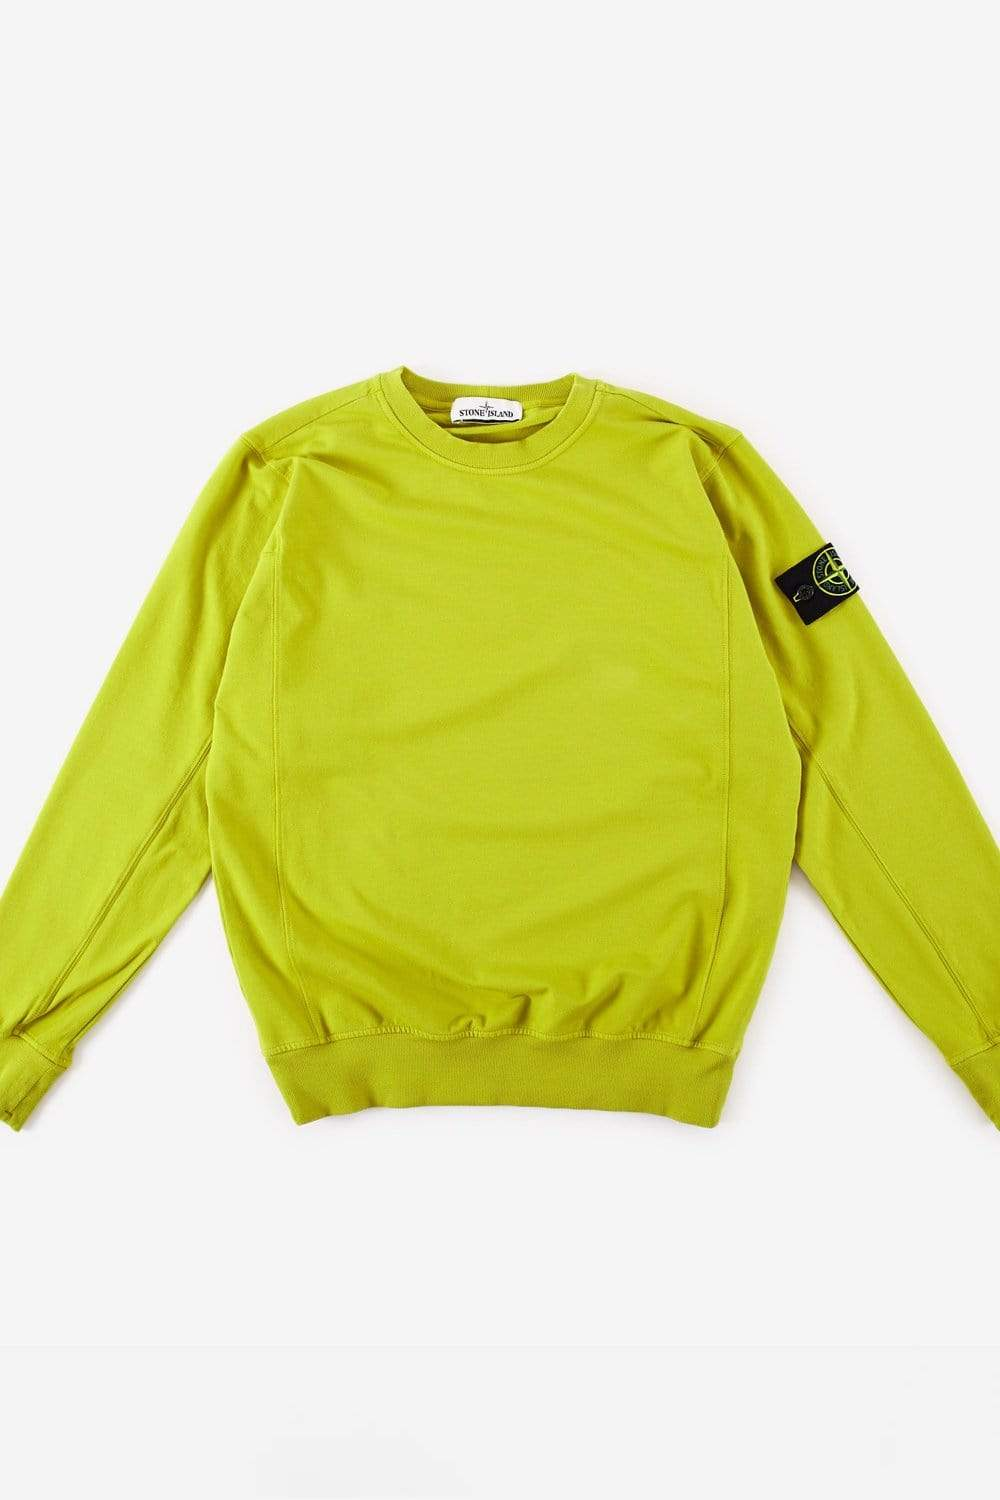 Stone Island Apparel Sweat Shirt Grano